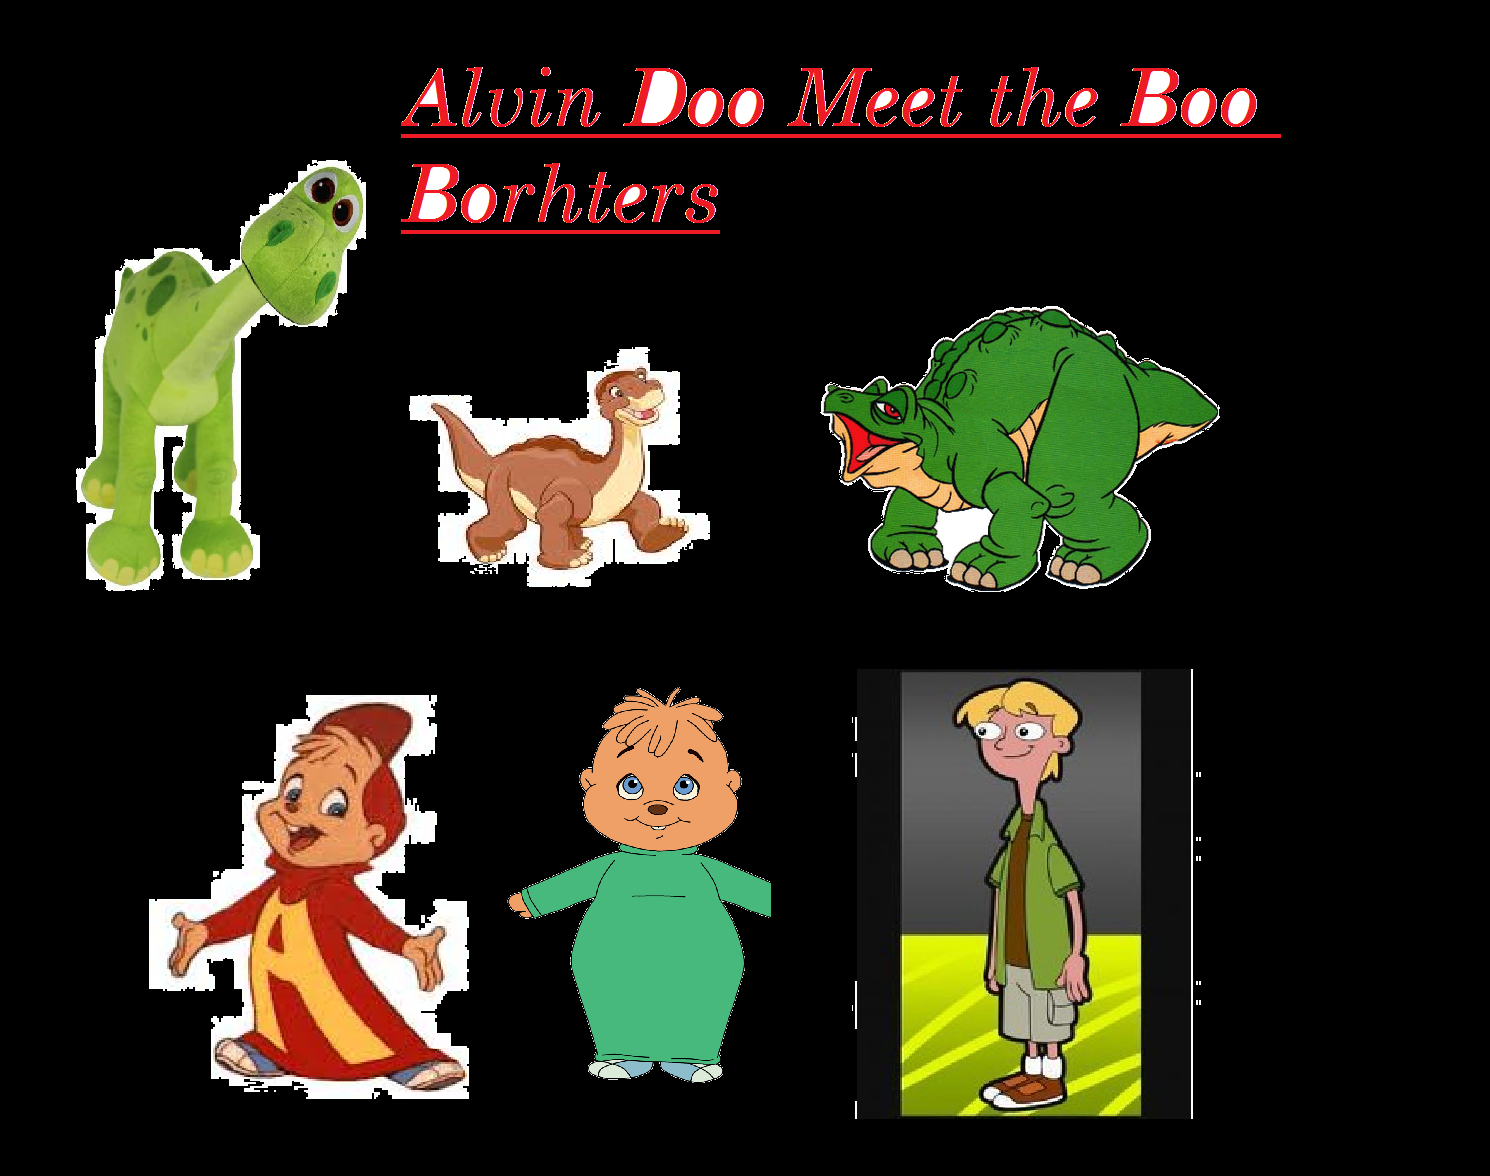 Alvin Doo Meets the Boo Brothers